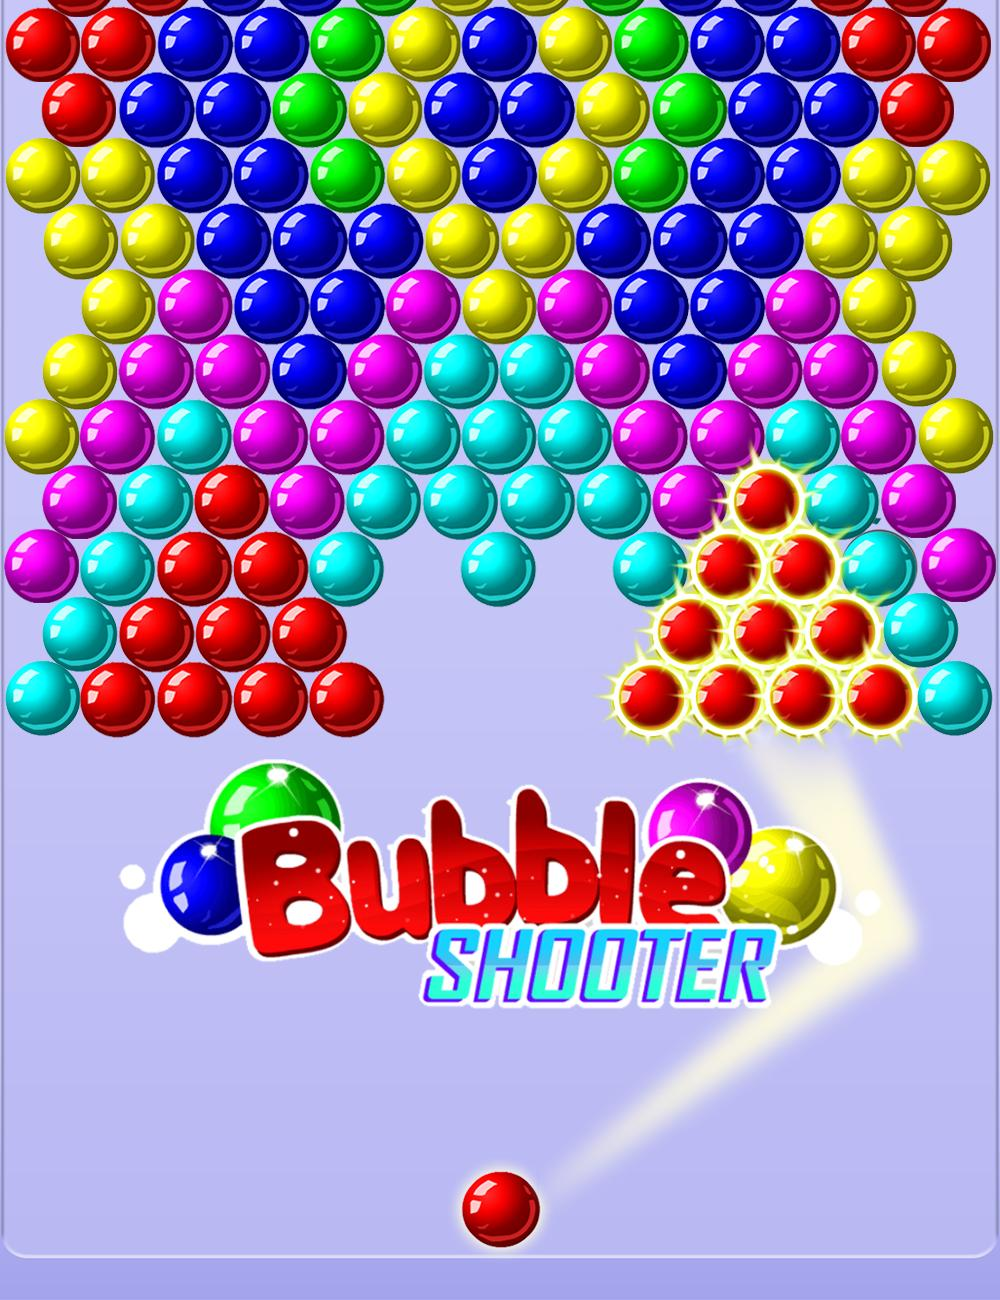 Bubbble Shooter